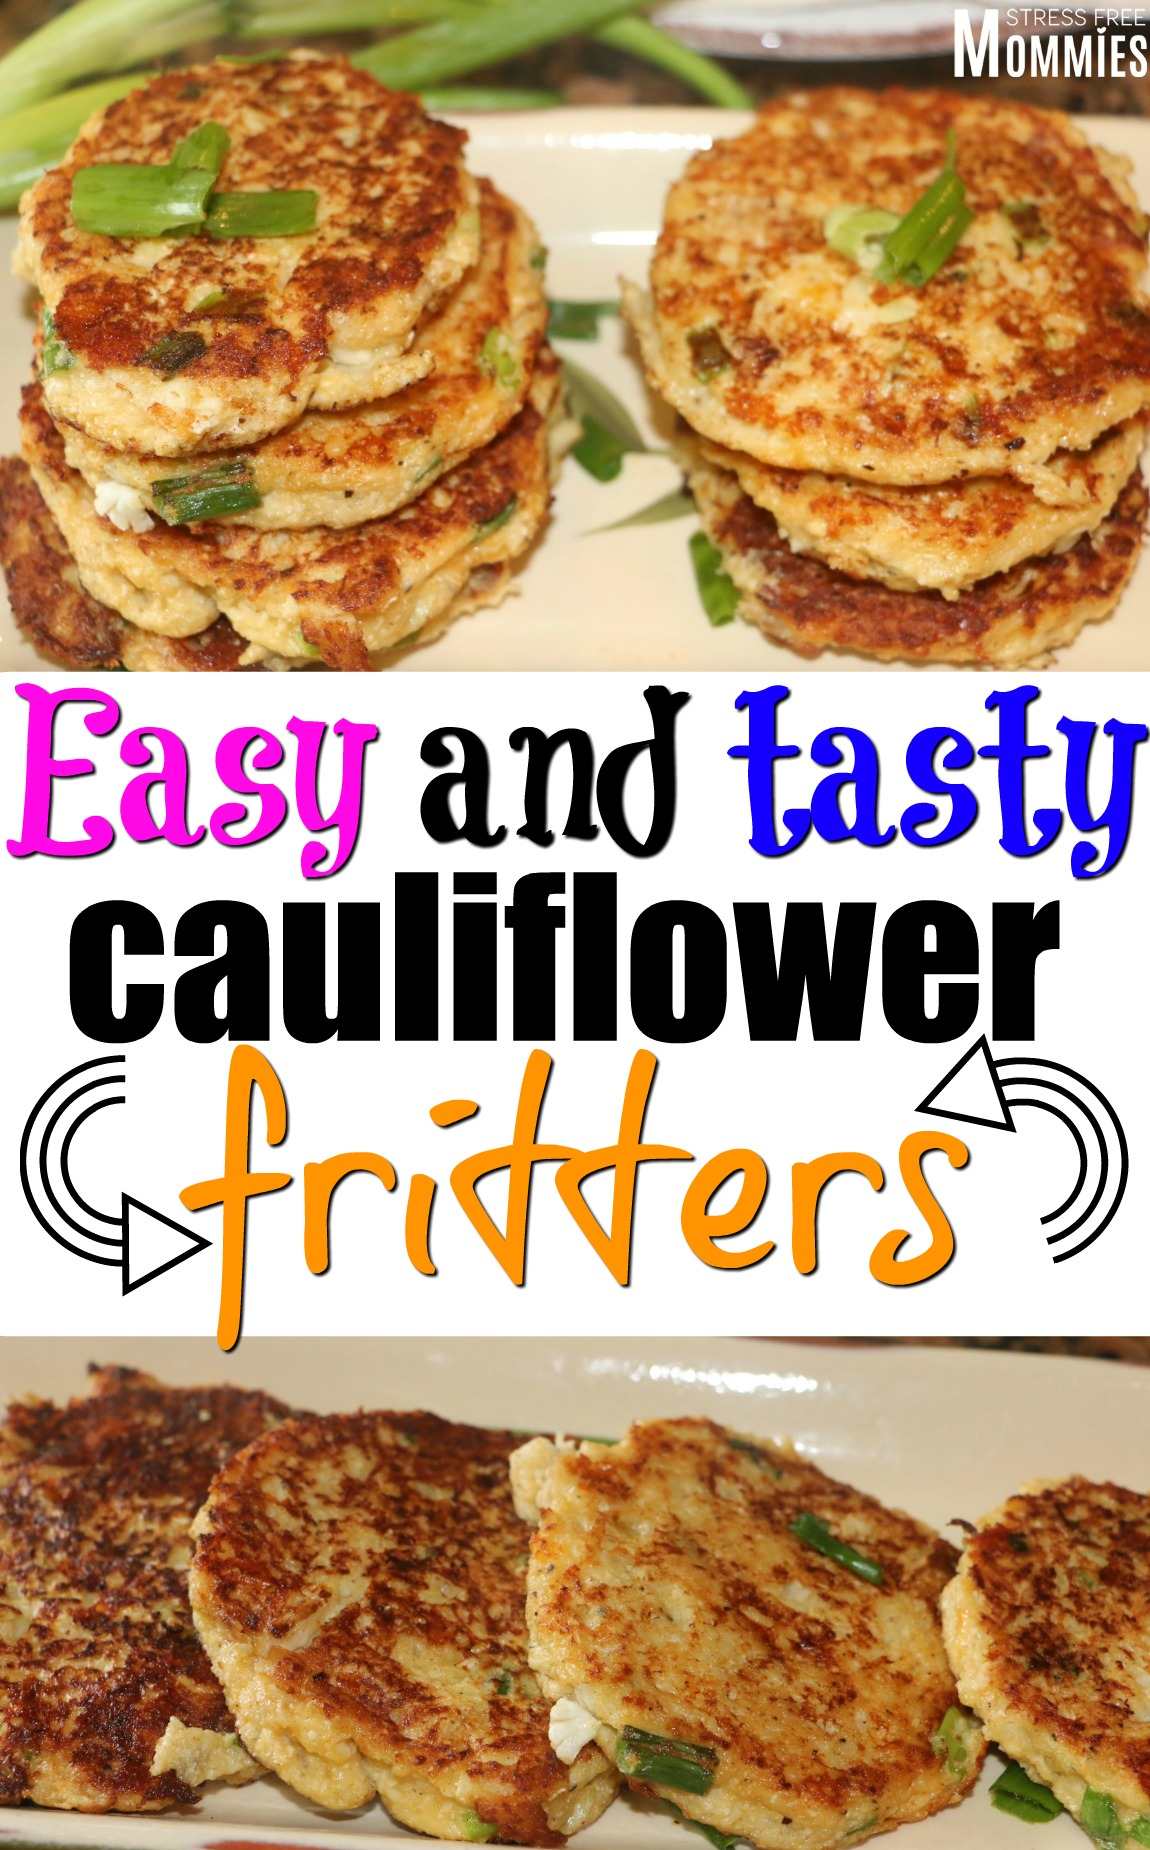 easy and tasty cauliflower fritters- Full of flavor and so easy to make. It\'s also kid-friendly, once you\'ve tried them you\'ll want to make them again! #veggies #kidfriendly #cauliflower